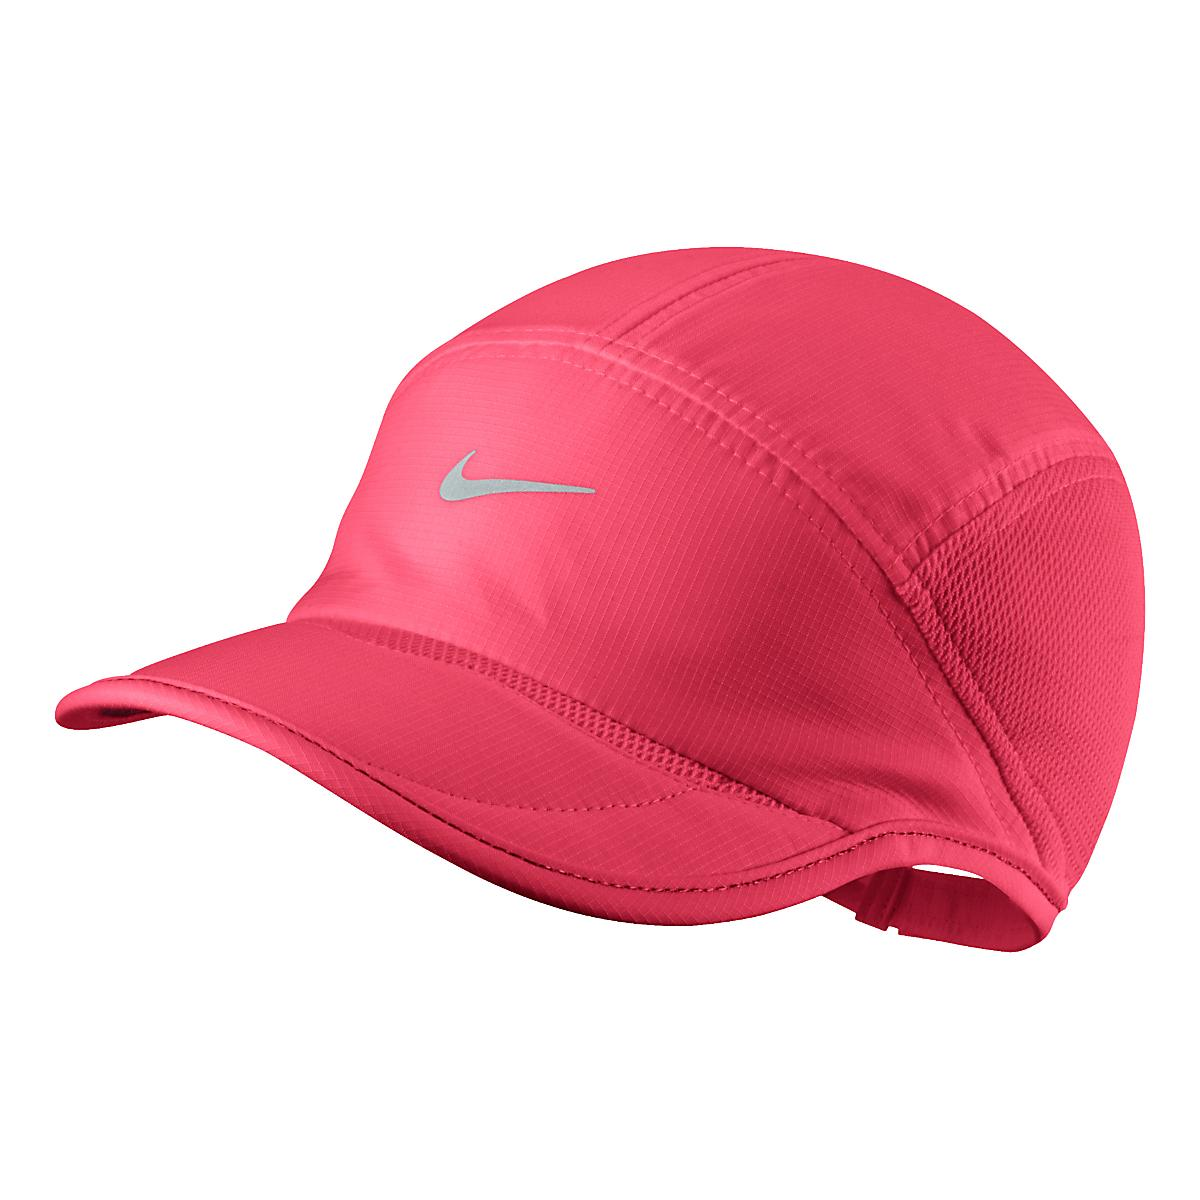 f094bf2e845 Womens Nike Daybreak Cap Headwear at Road Runner Sports